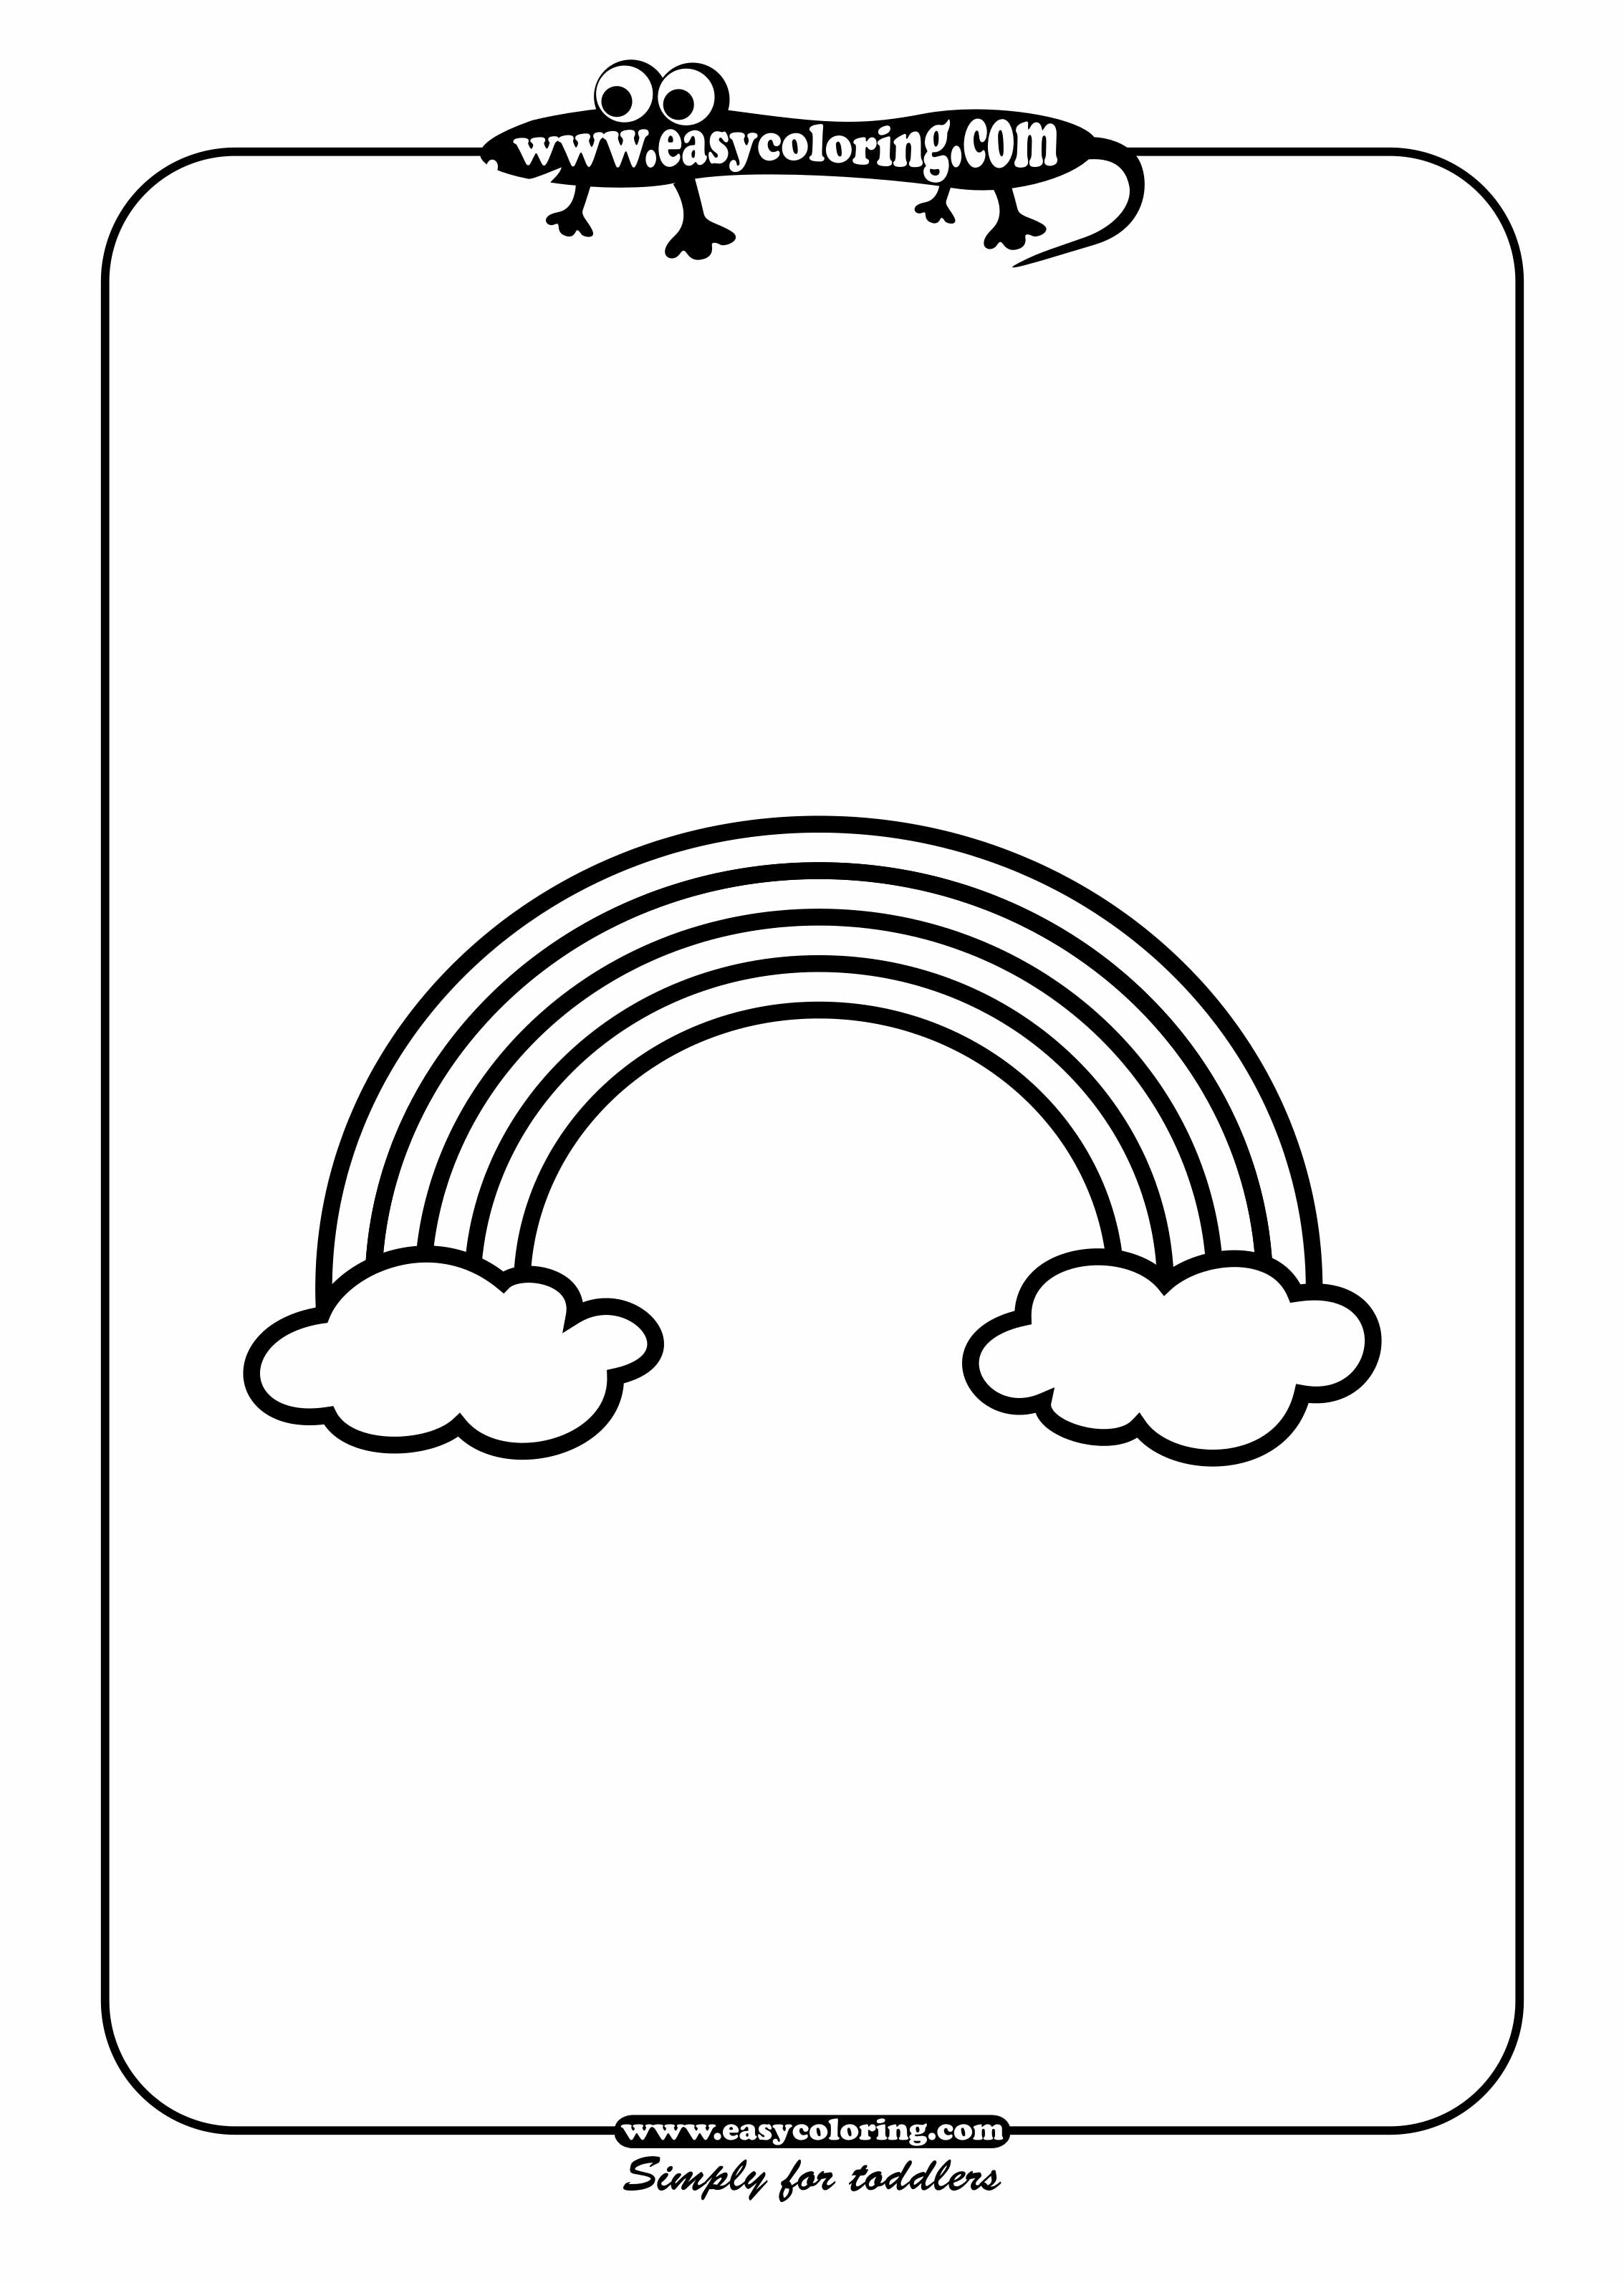 rainbow simple shapes easy coloring pages for toddlers